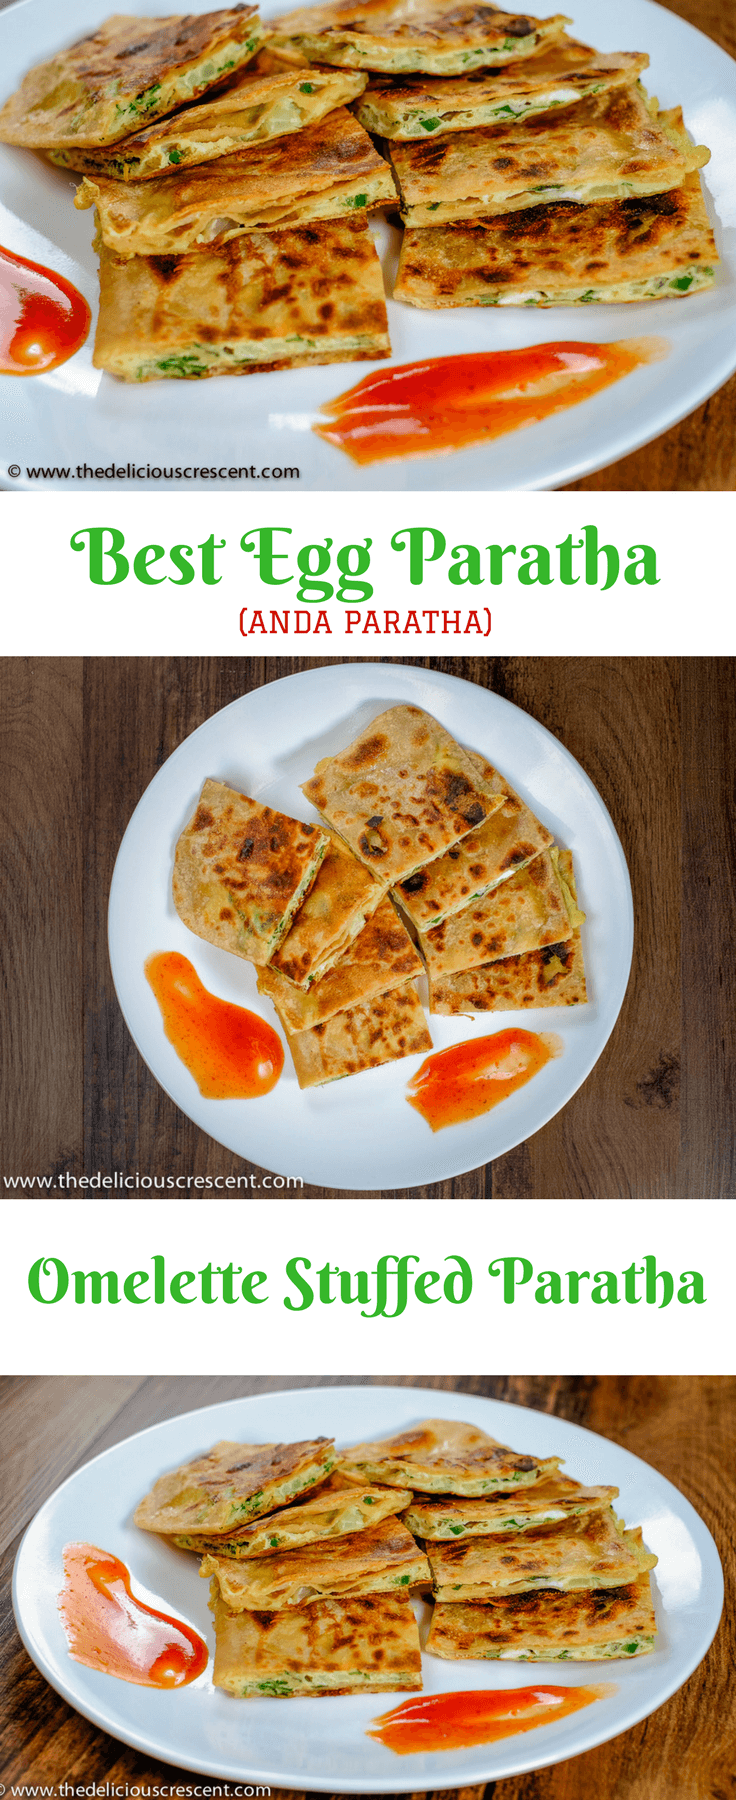 Egg paratha (Anda paratha) is omelette stuffed in a layered flat bread. It is a traditional Indian breakfast that is whole grain with high quality protein and good fiber.